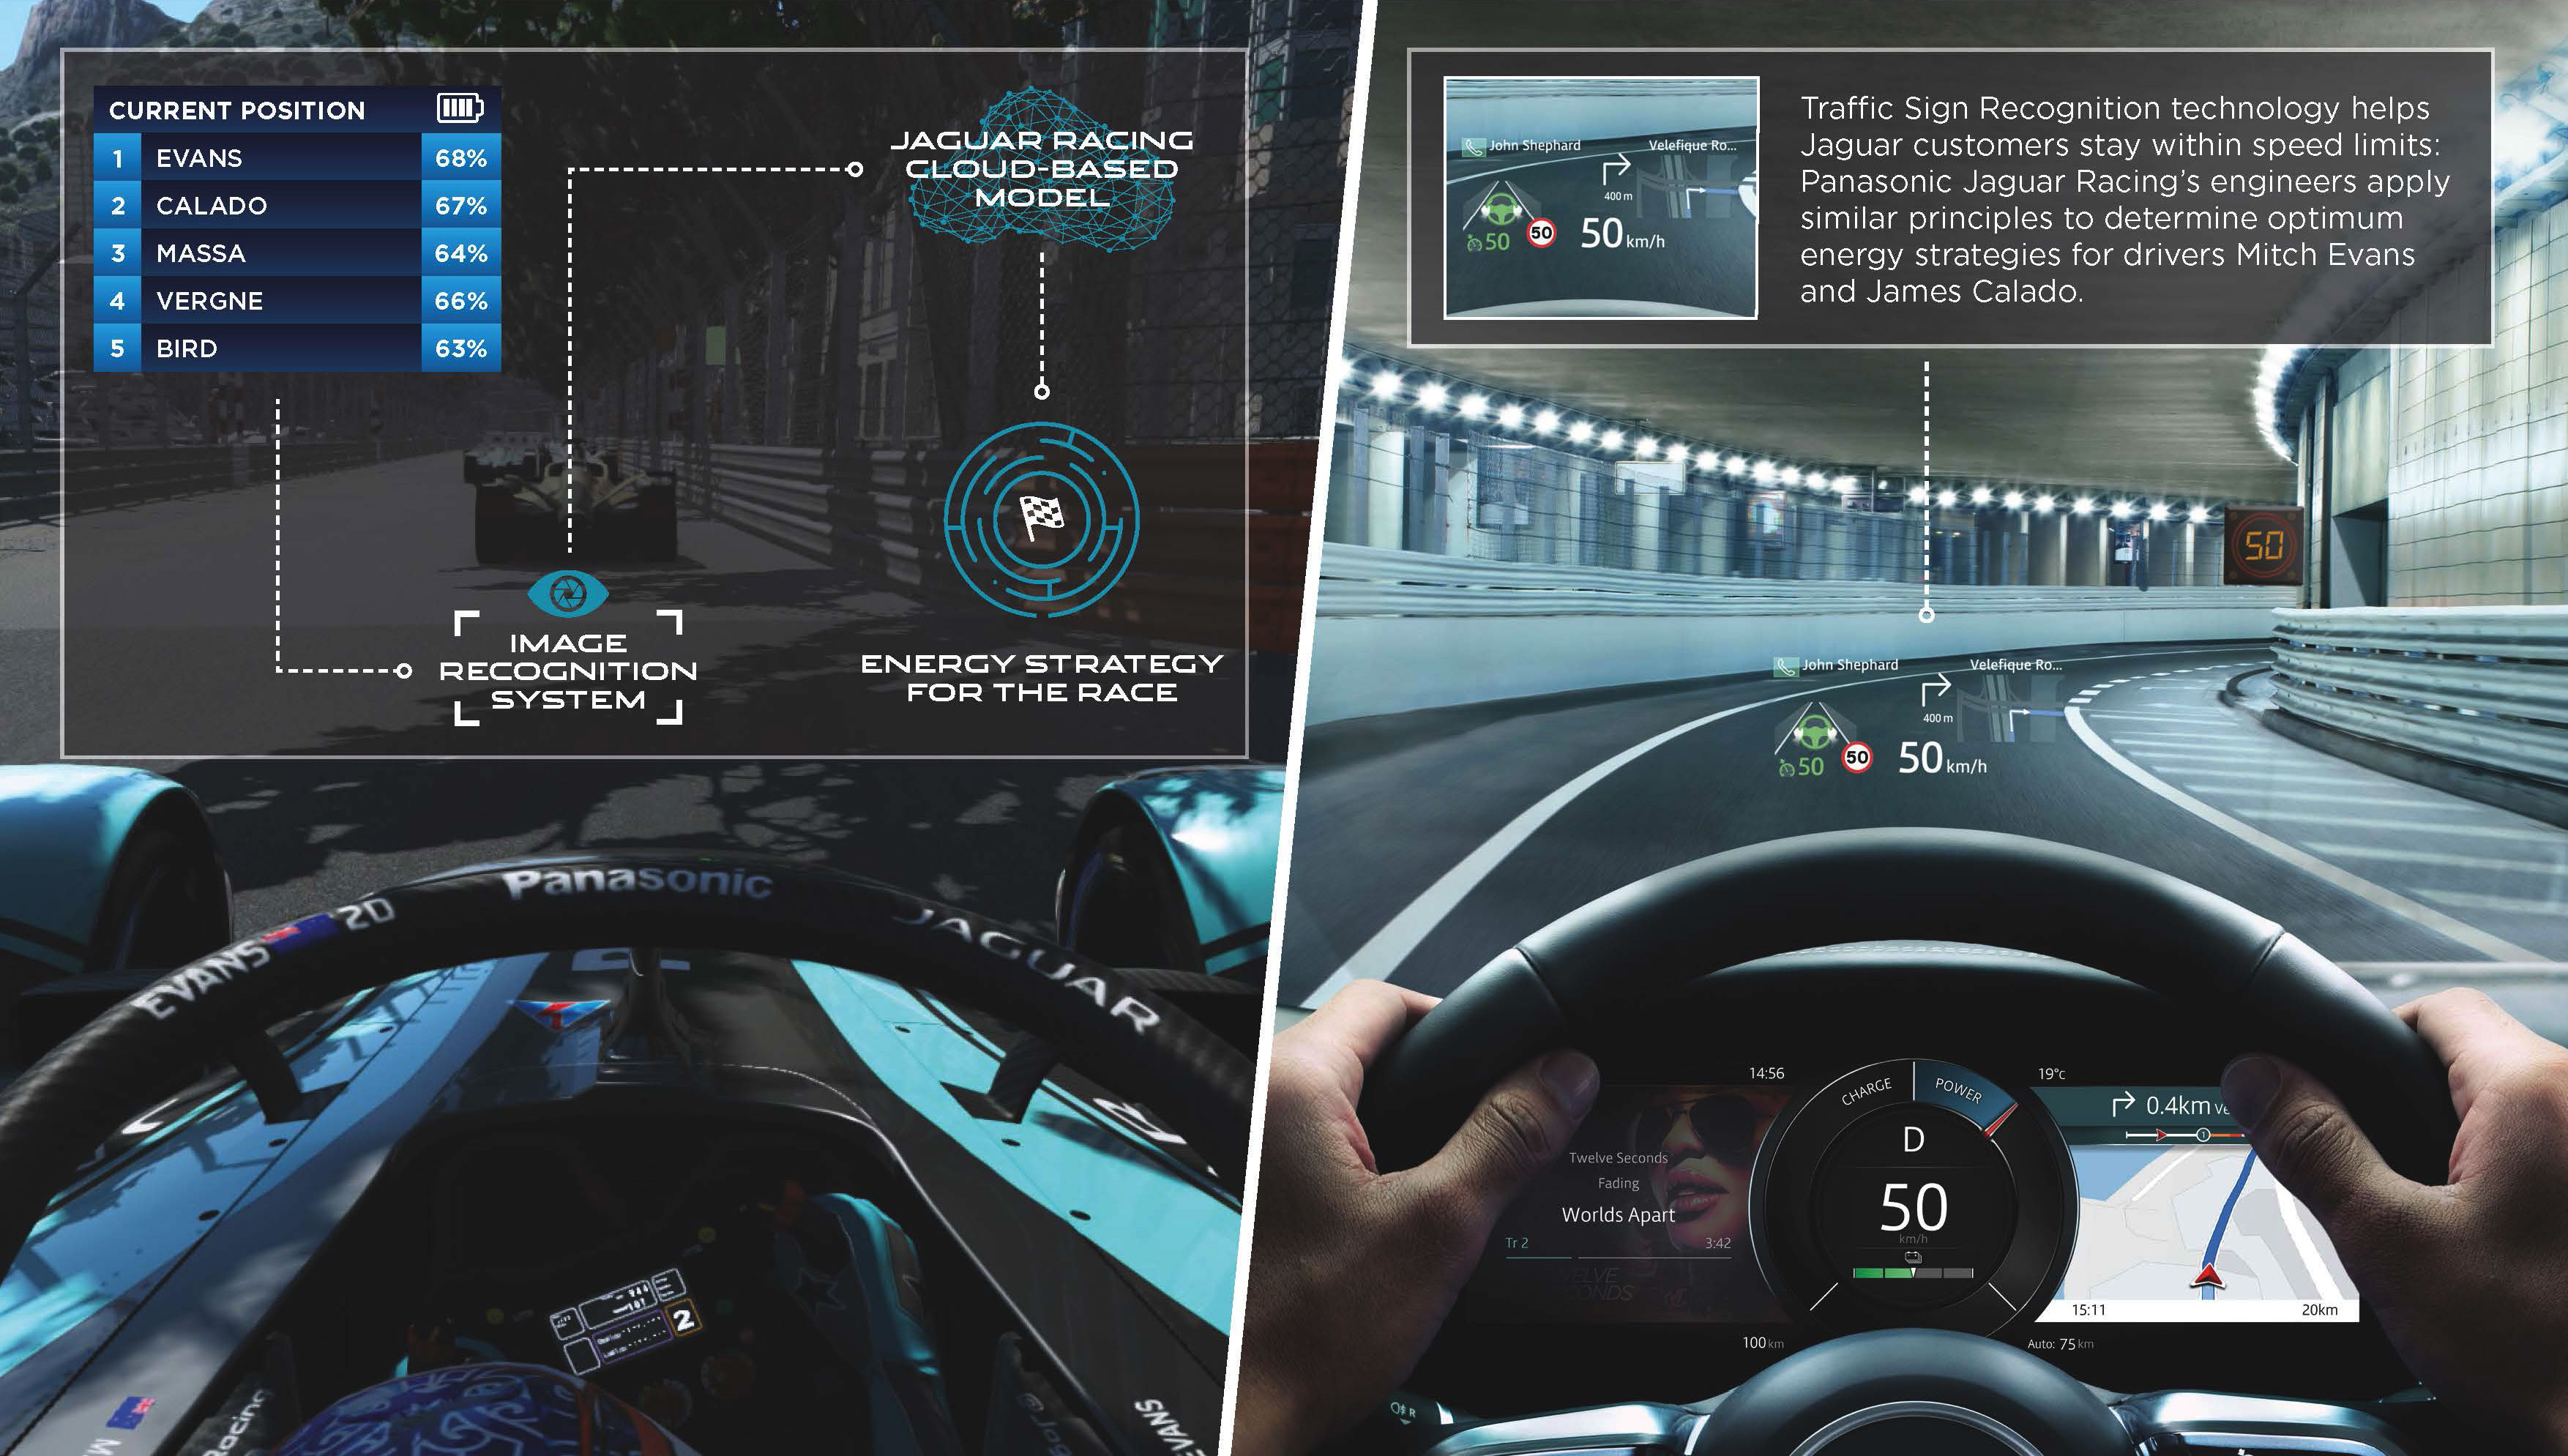 Digital vision technology signals on-track success for panasonic jaguar racing